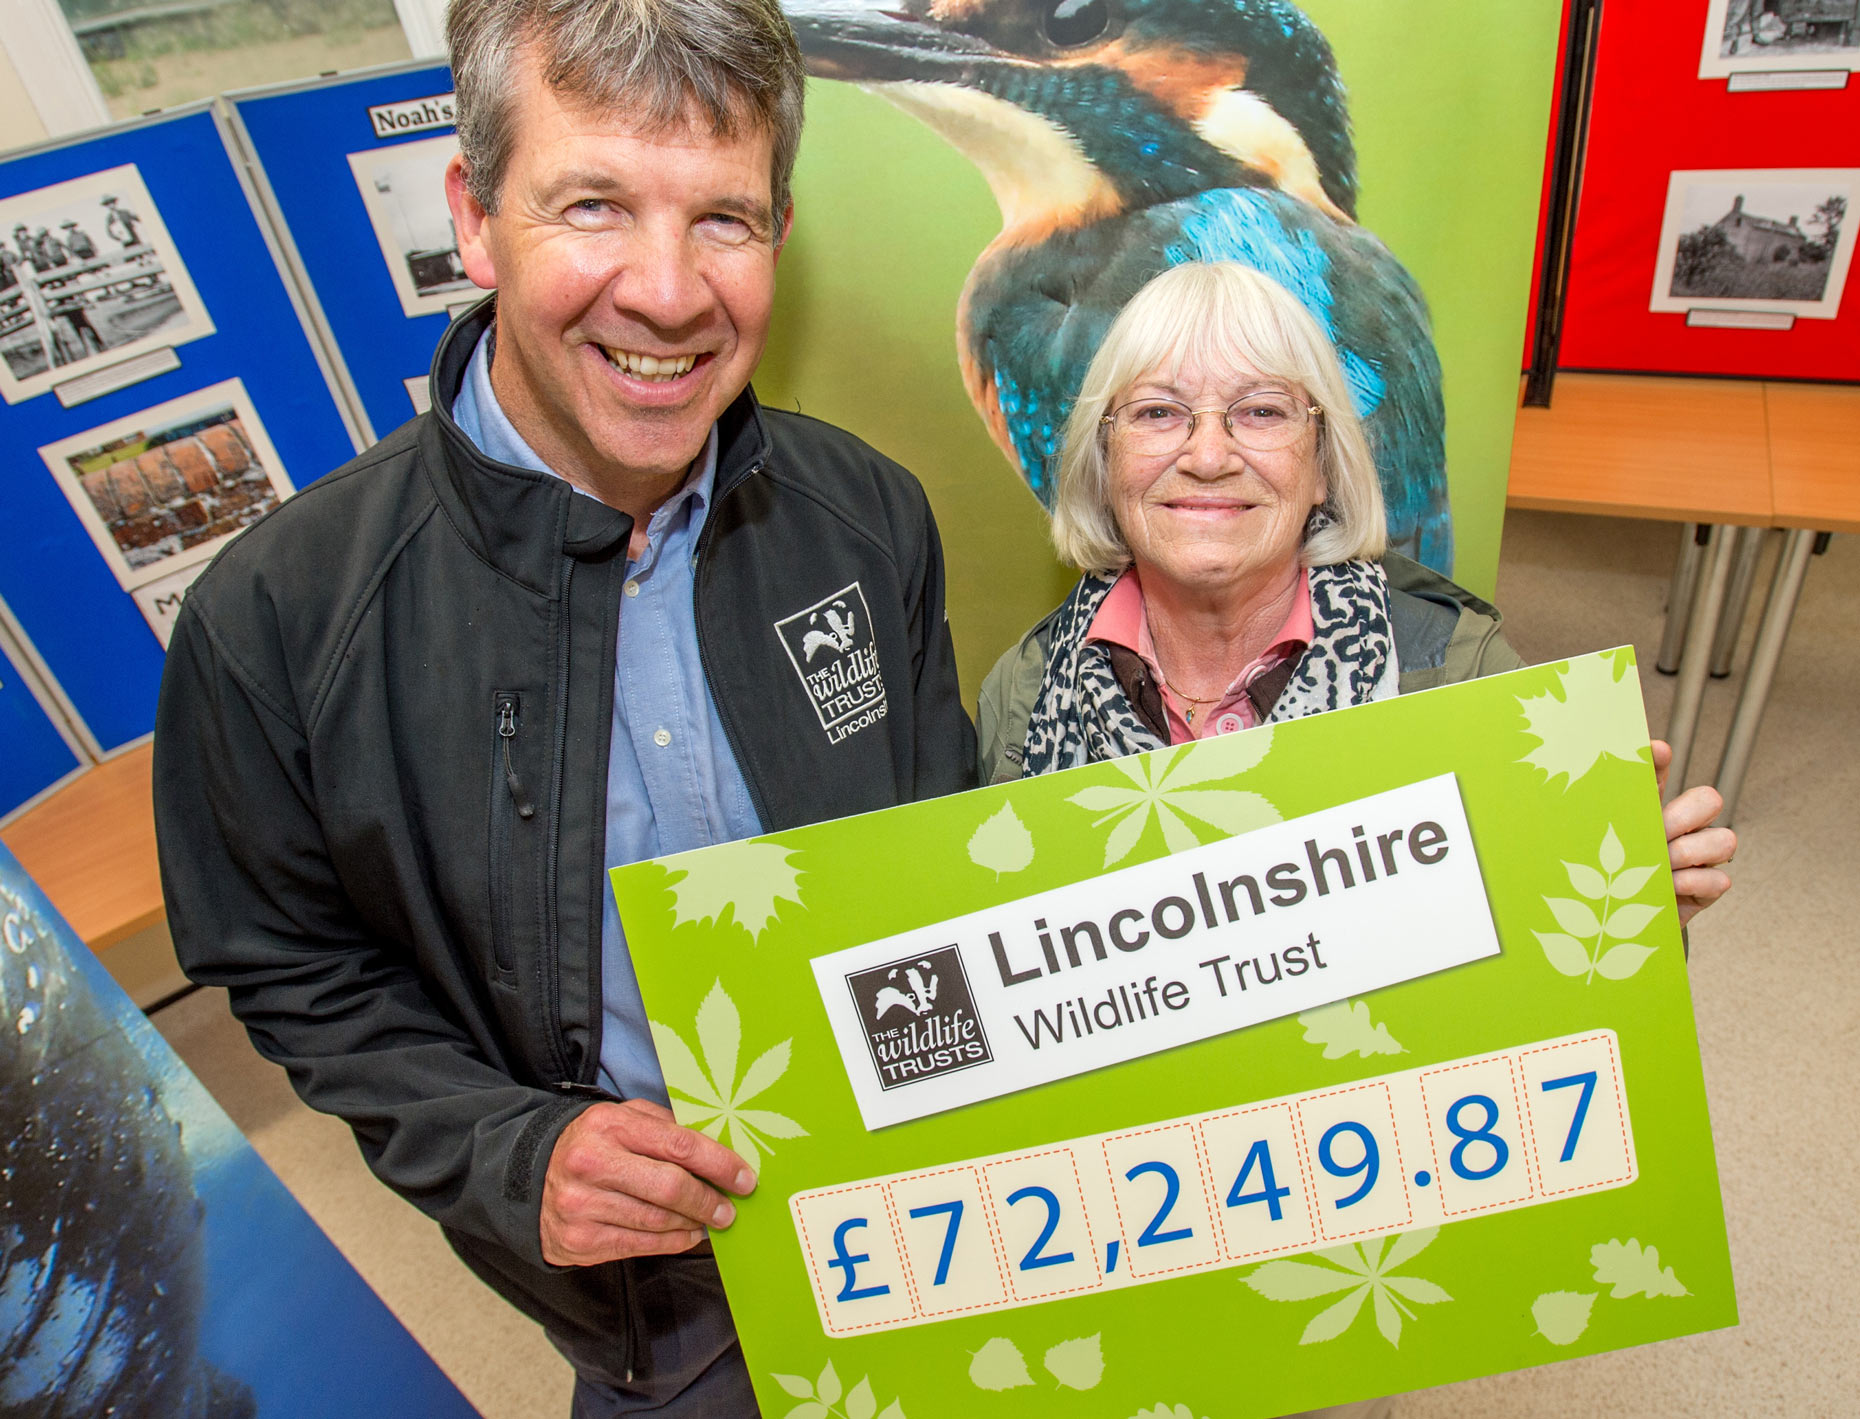 (L-R) Chief Executive of Lincolnshire Wildlife Trust Paul Learoyd being presented with a cheque for £72,249.87 by Lincolnshire Co-op Director Margaret Tranter at Gibraltar Point Nature Reserve.